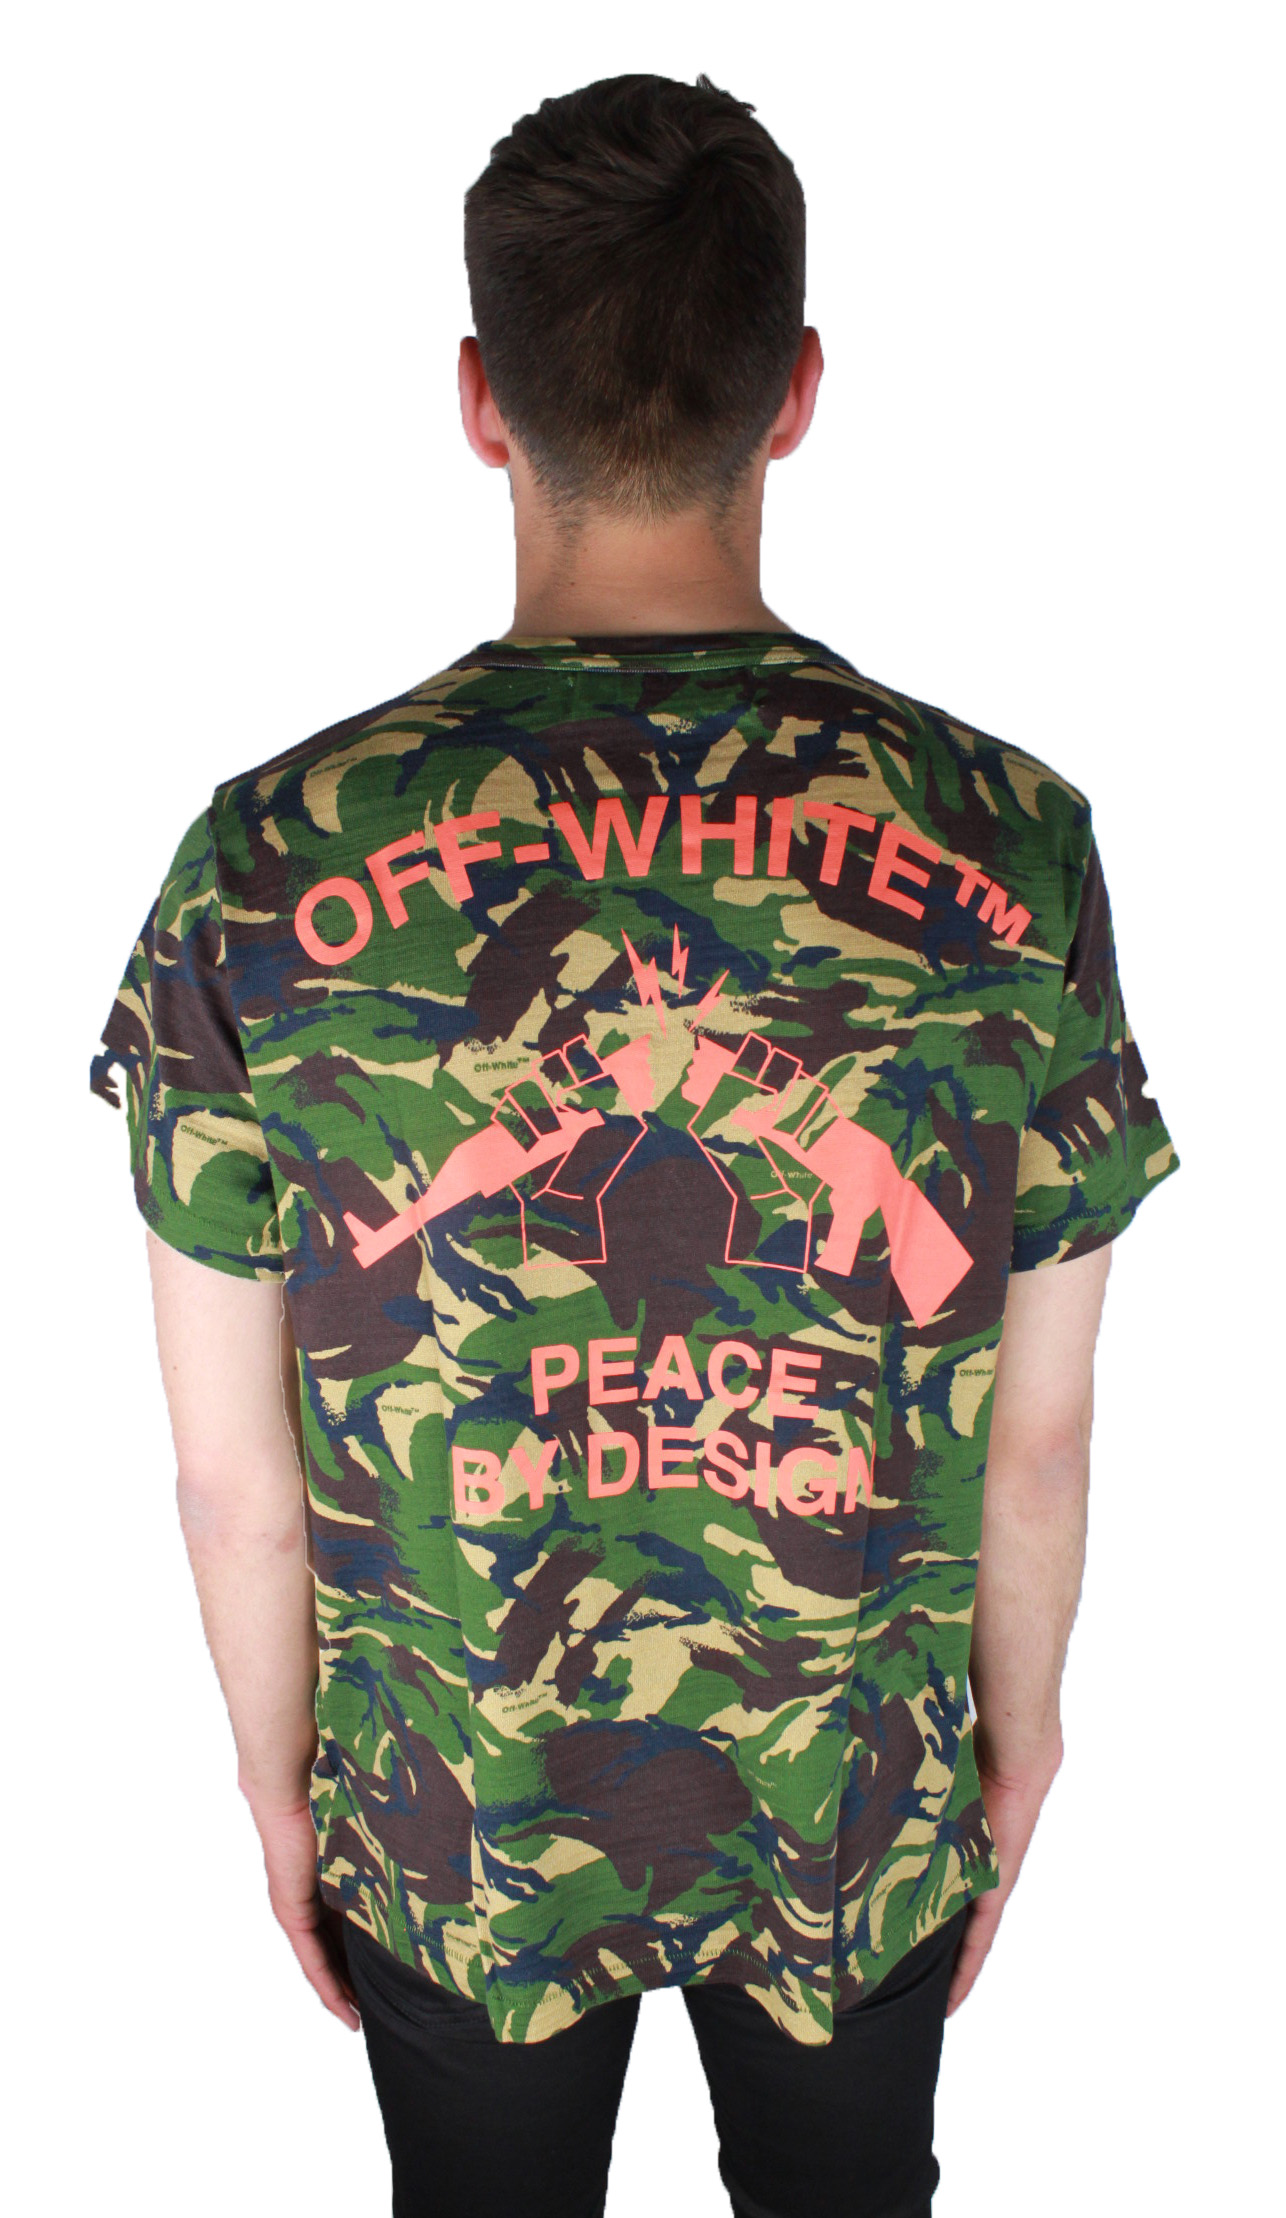 Details about Off-White Camouflage Tee OMAA002 S17411143 9919 T-Shirt 308ec354c4c